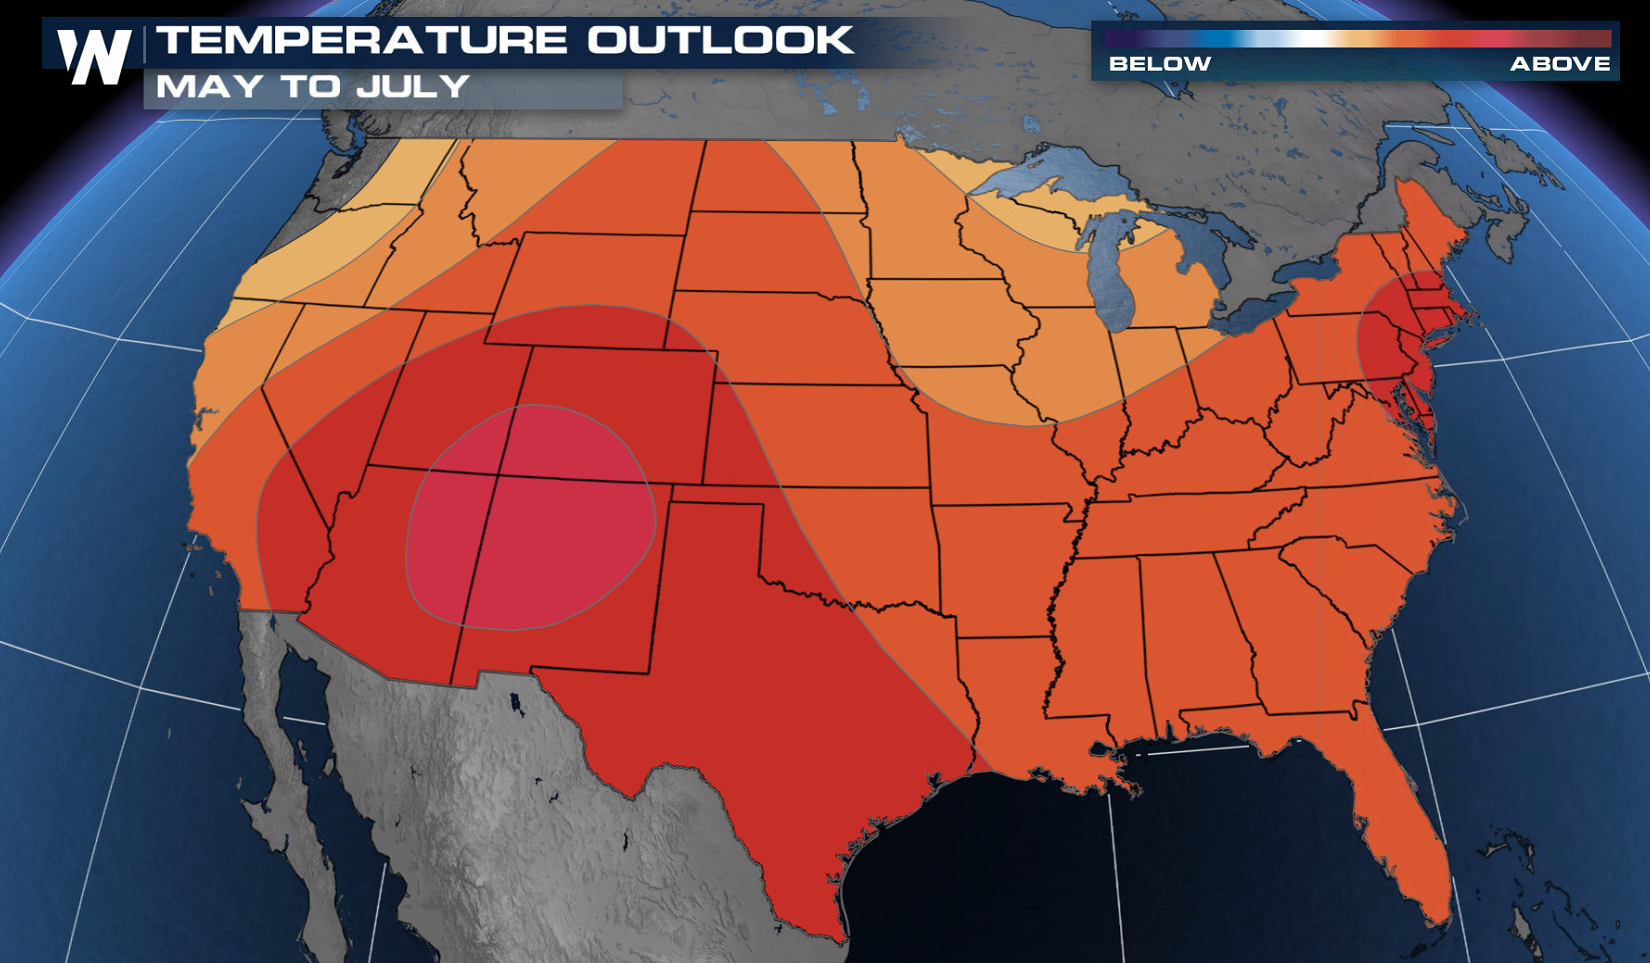 Warmth Predicted for the May to June Outlook